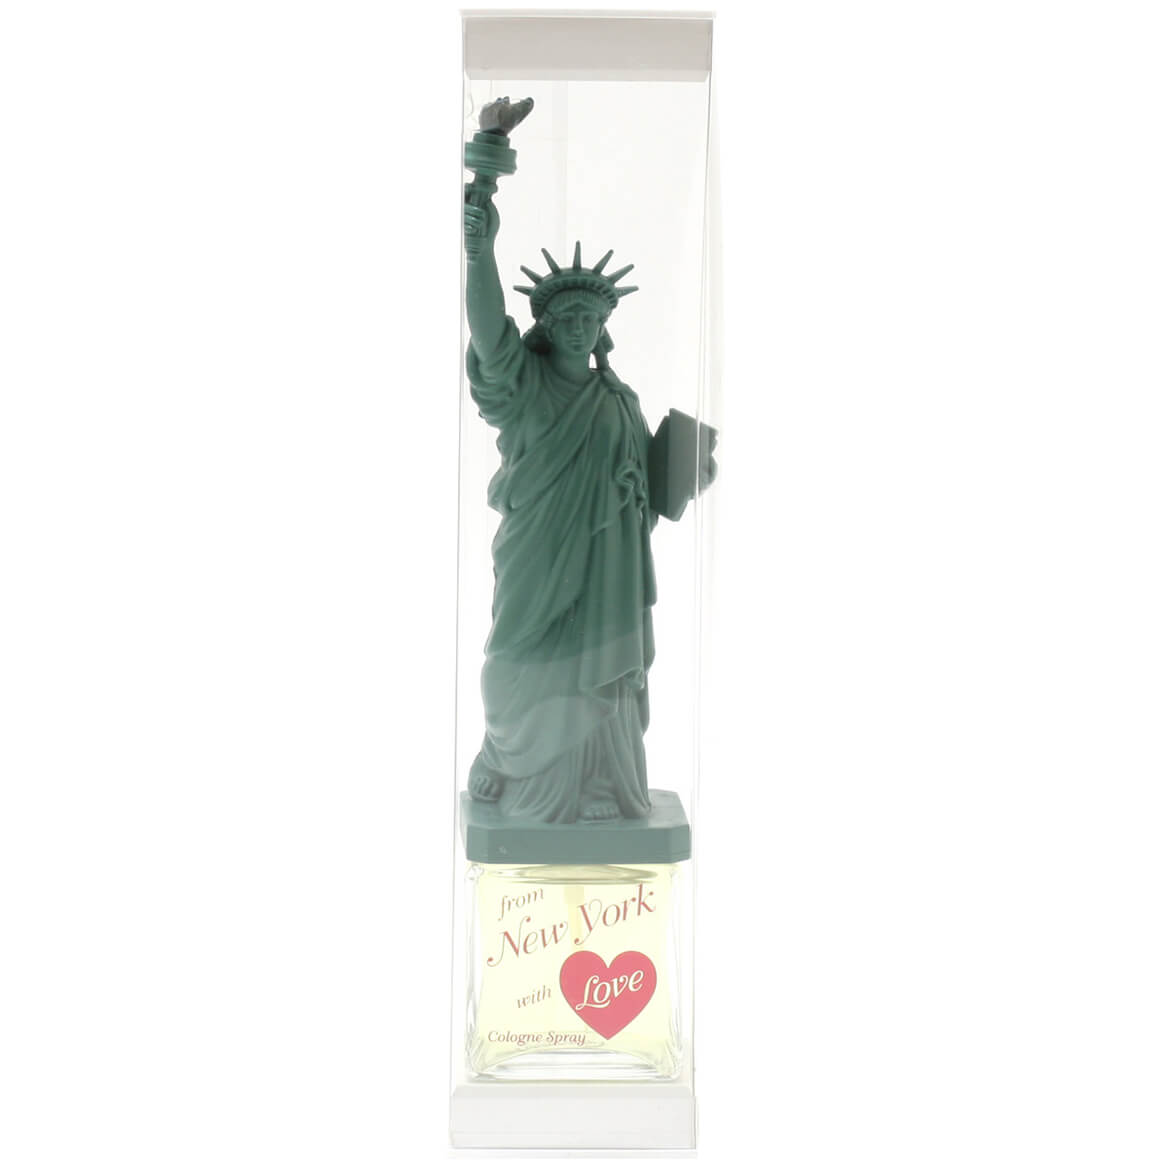 Statue of Liberty Ladies, Cologne Spray 1.7oz-360275